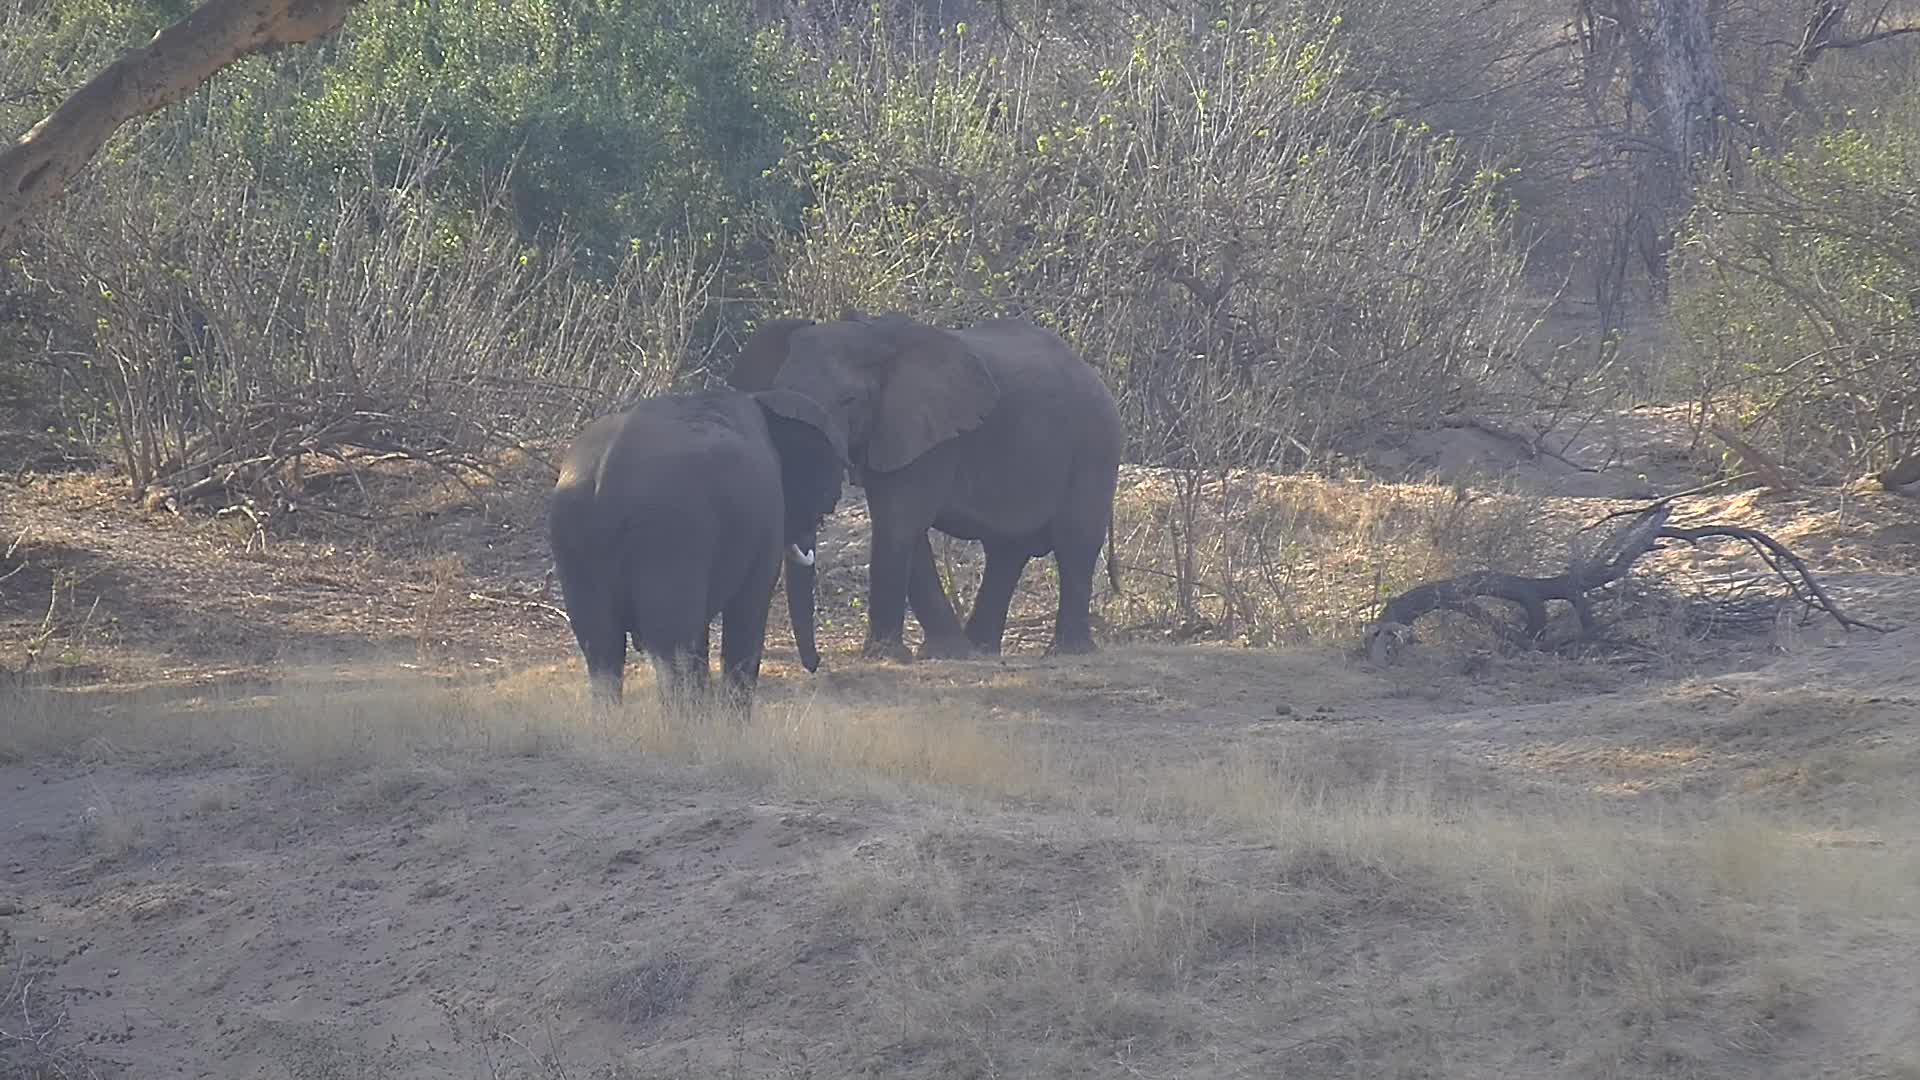 VIDEO: Elephants 'Boys being boys!'